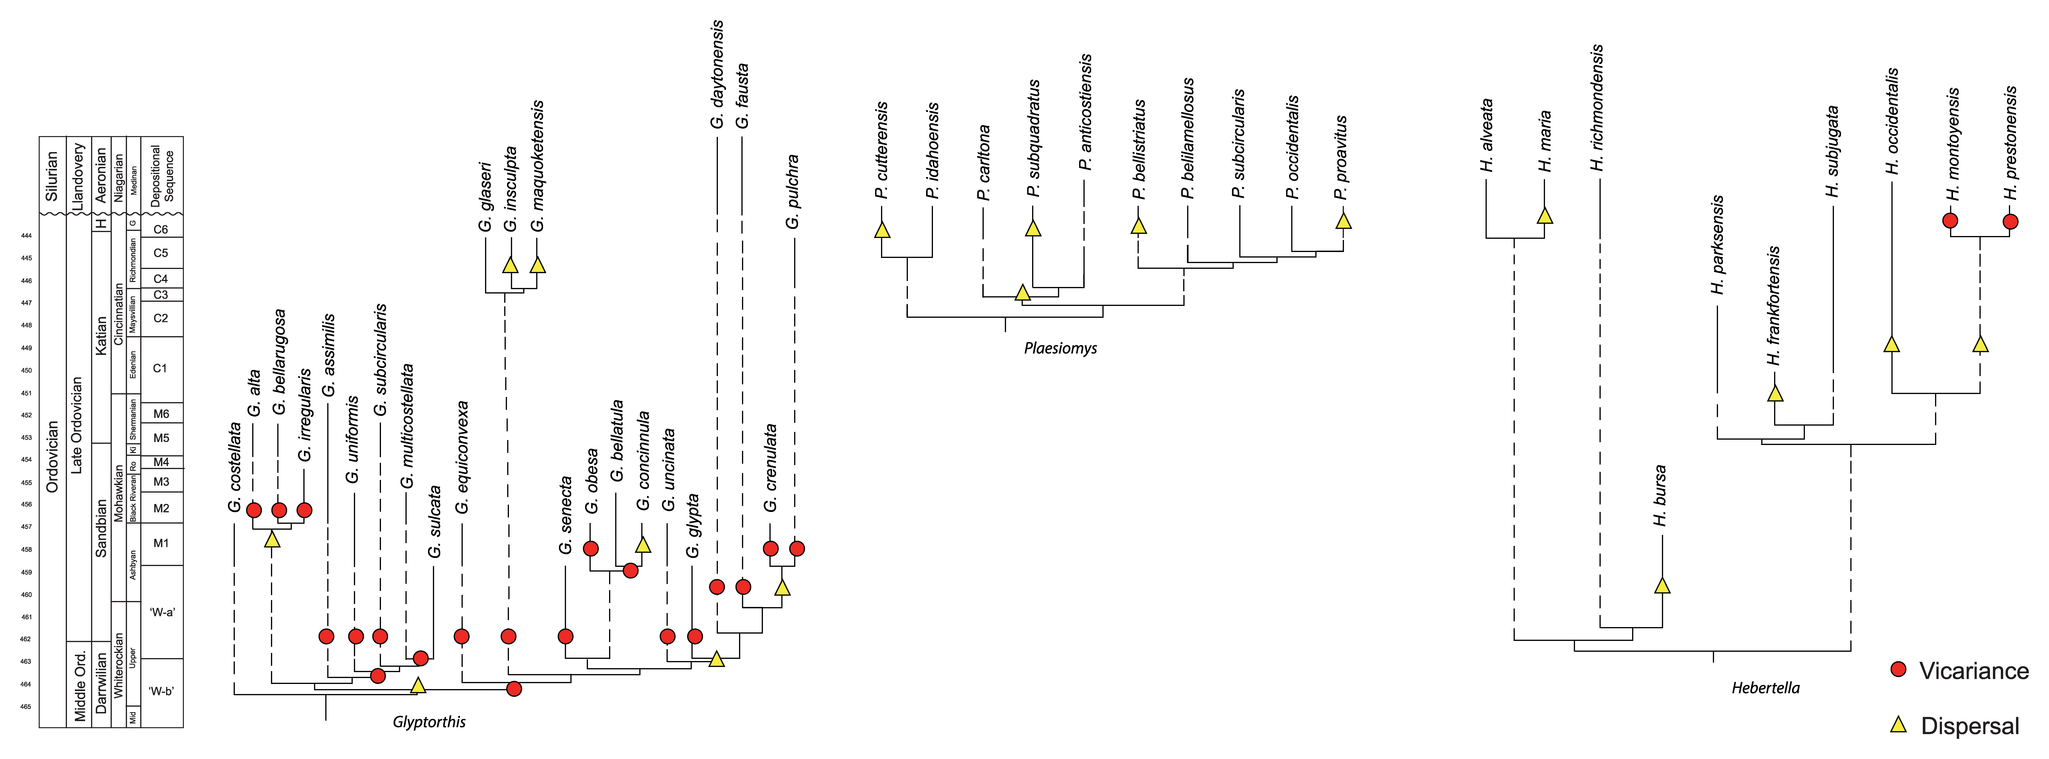 Image shows examples of cladograms scaled to time and including extinct taxa as terminals.